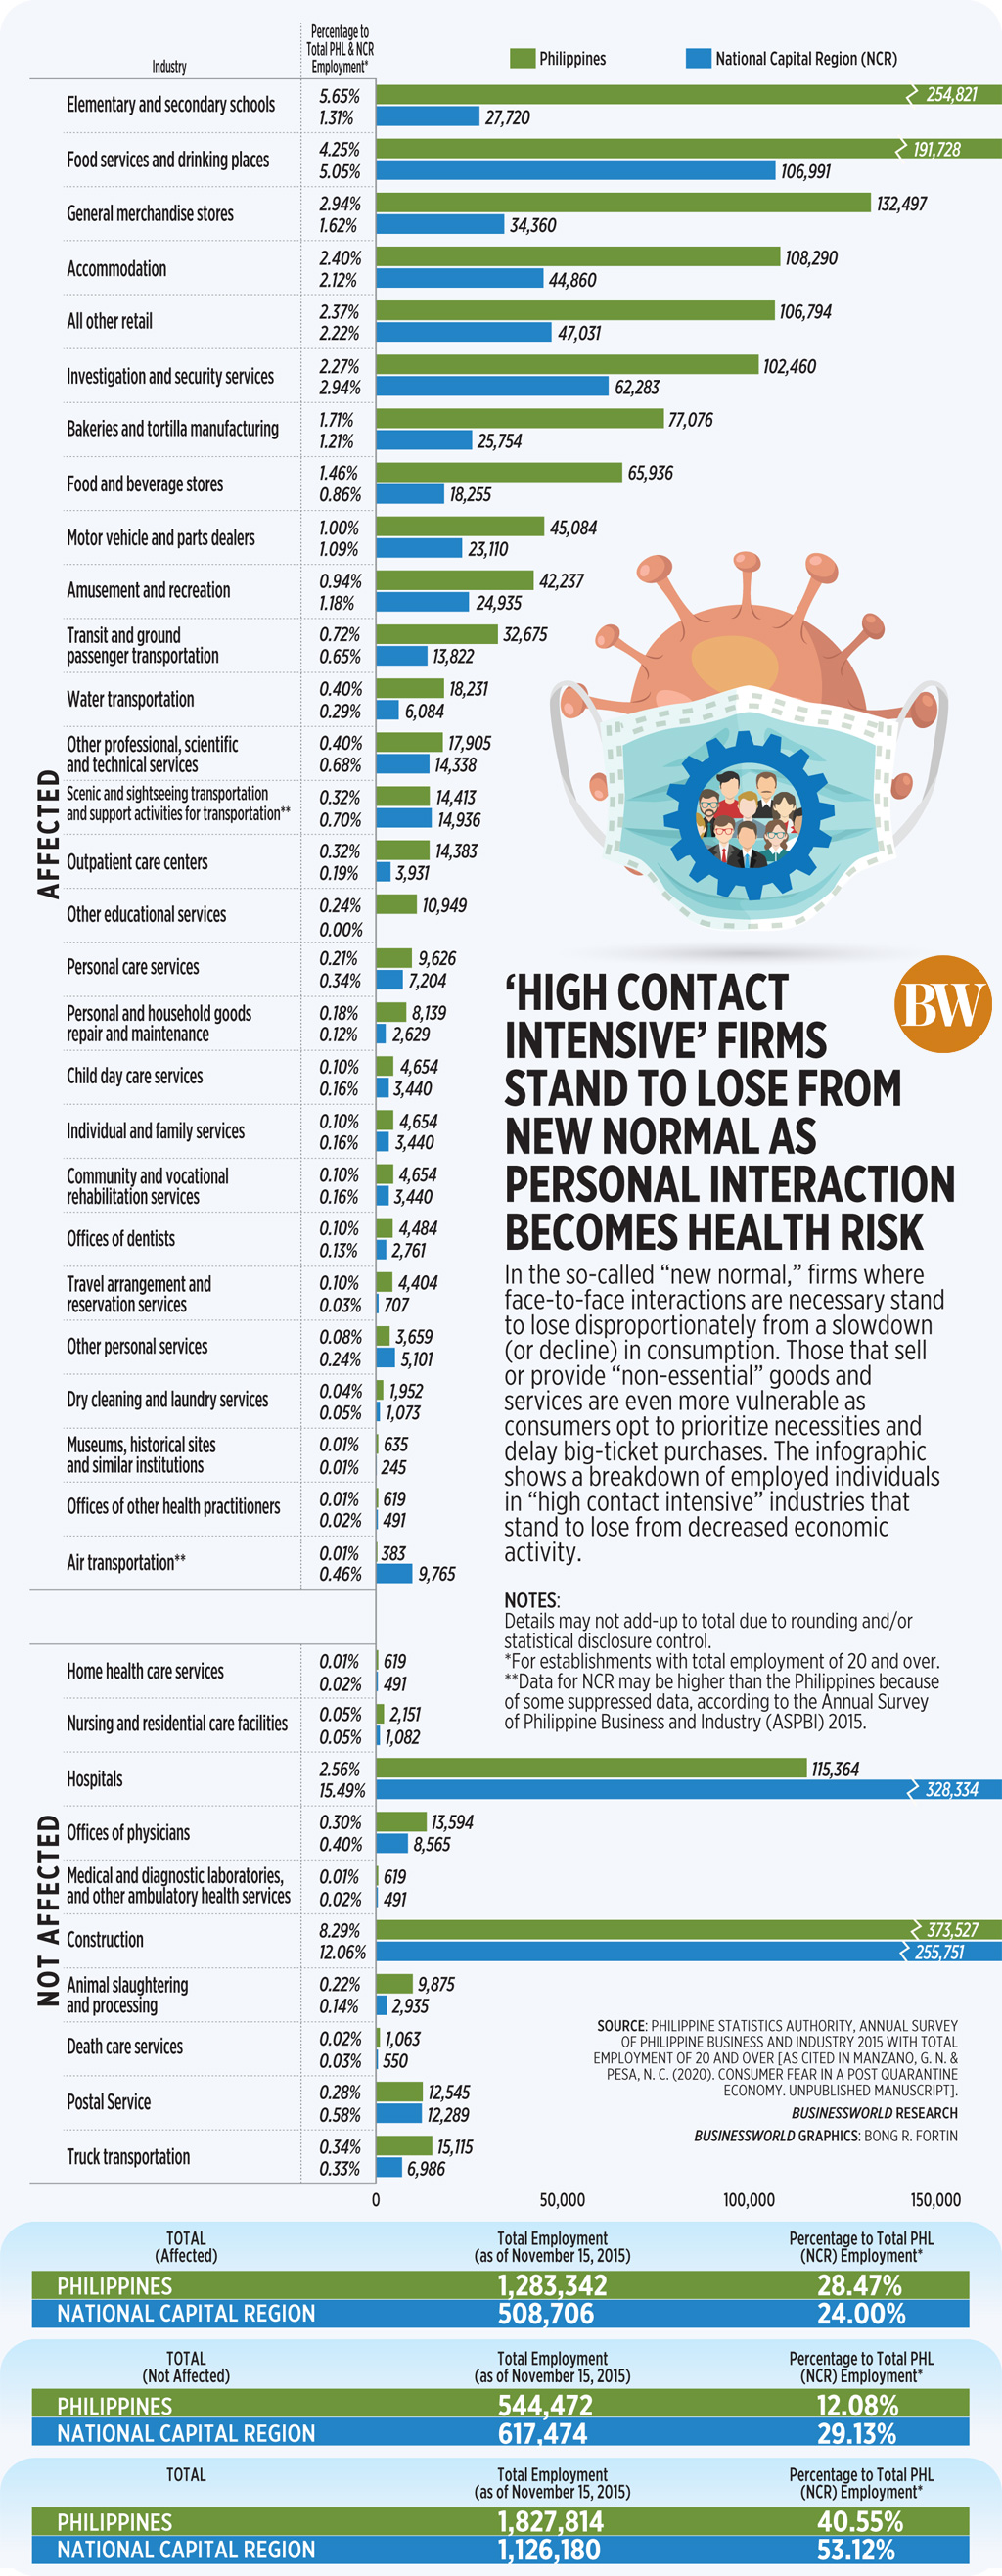 49915869851 3024b48d19 o - 'High contact intensive' firms stand to lose from new normal as personal interaction becomes health risk